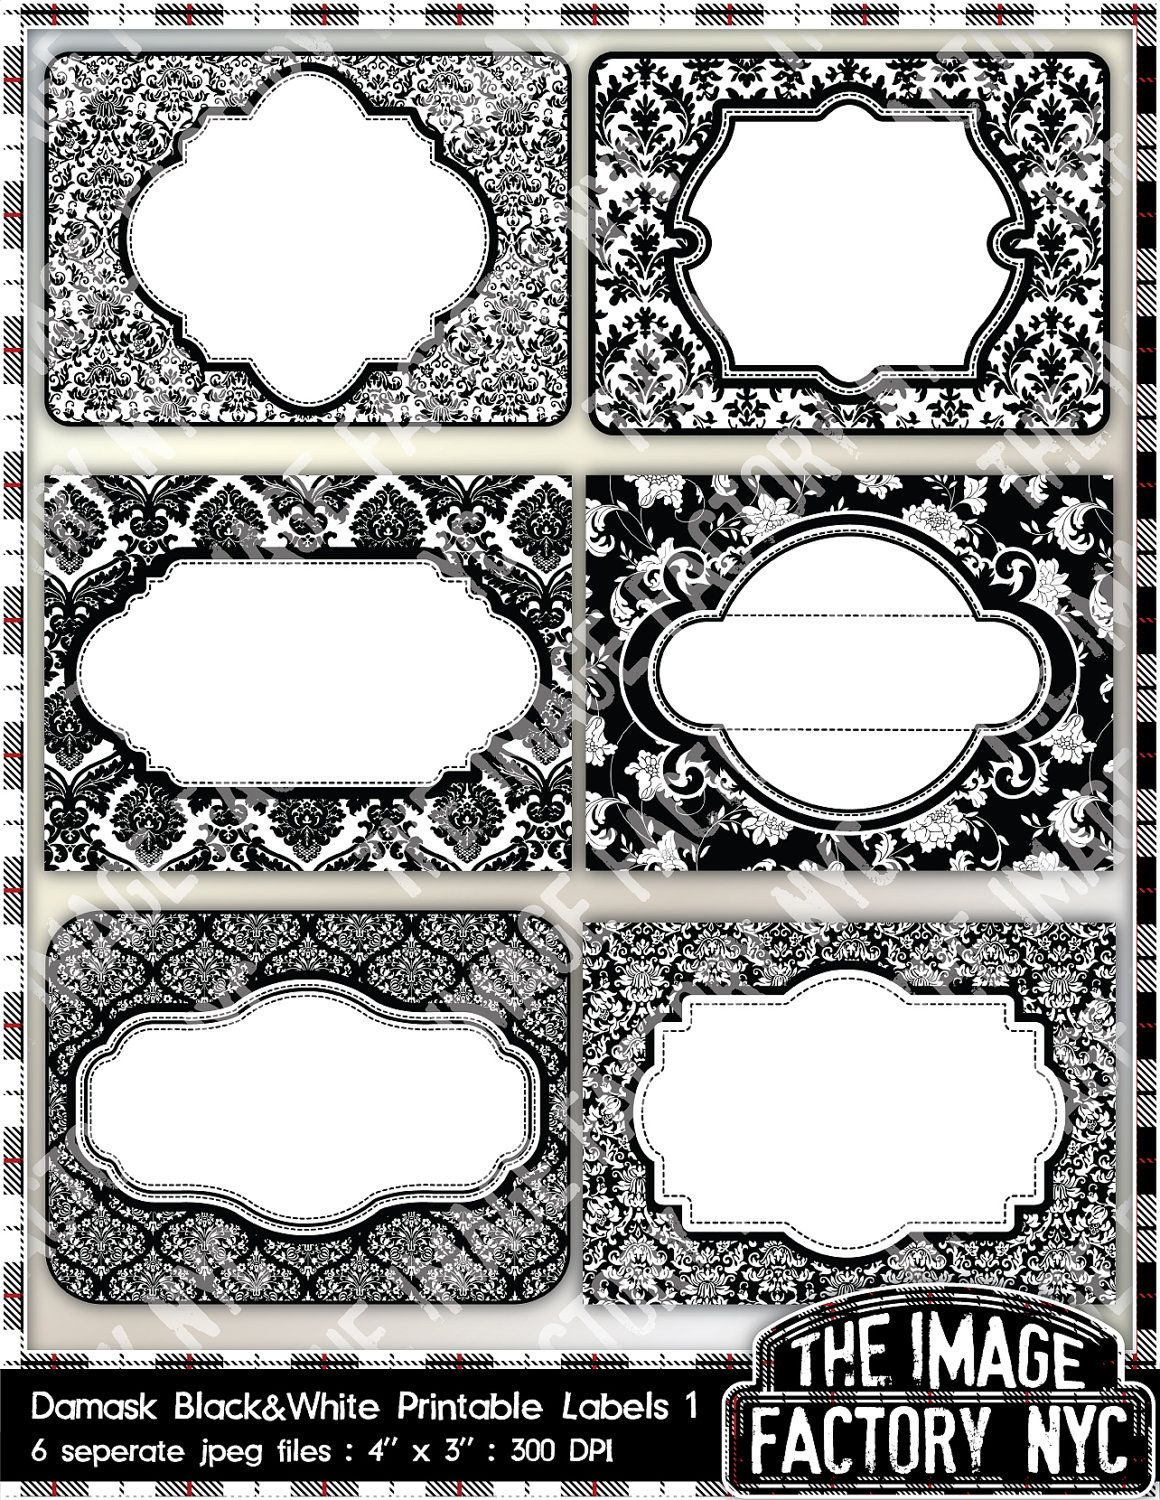 Black And White Damask Printable Labels Tags For Gift Tags Place Cards Recipe Cards Labeling Etc Tifny Printable Labels Diy Labels Printable Label Tags